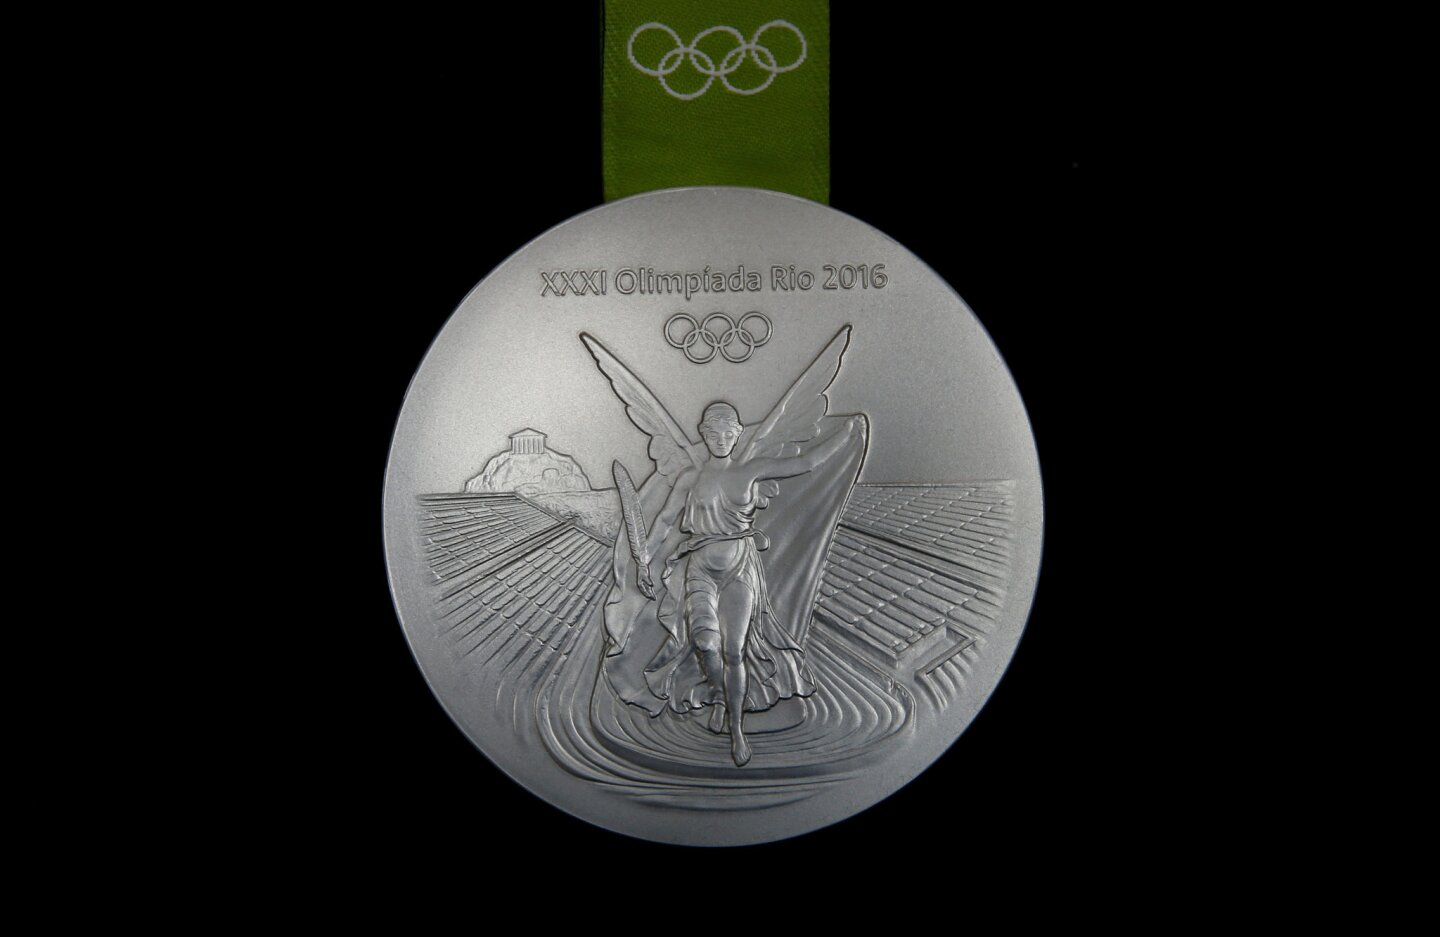 The Rio 2016 silver Olympic medal is pictured at the Casa da Moeda do Brasil (Brazilian Mint) in Rio de Janeiro, Brazil, June 28, 2016. REUTERS/Sergio Moraes ** Usable by SD ONLY **